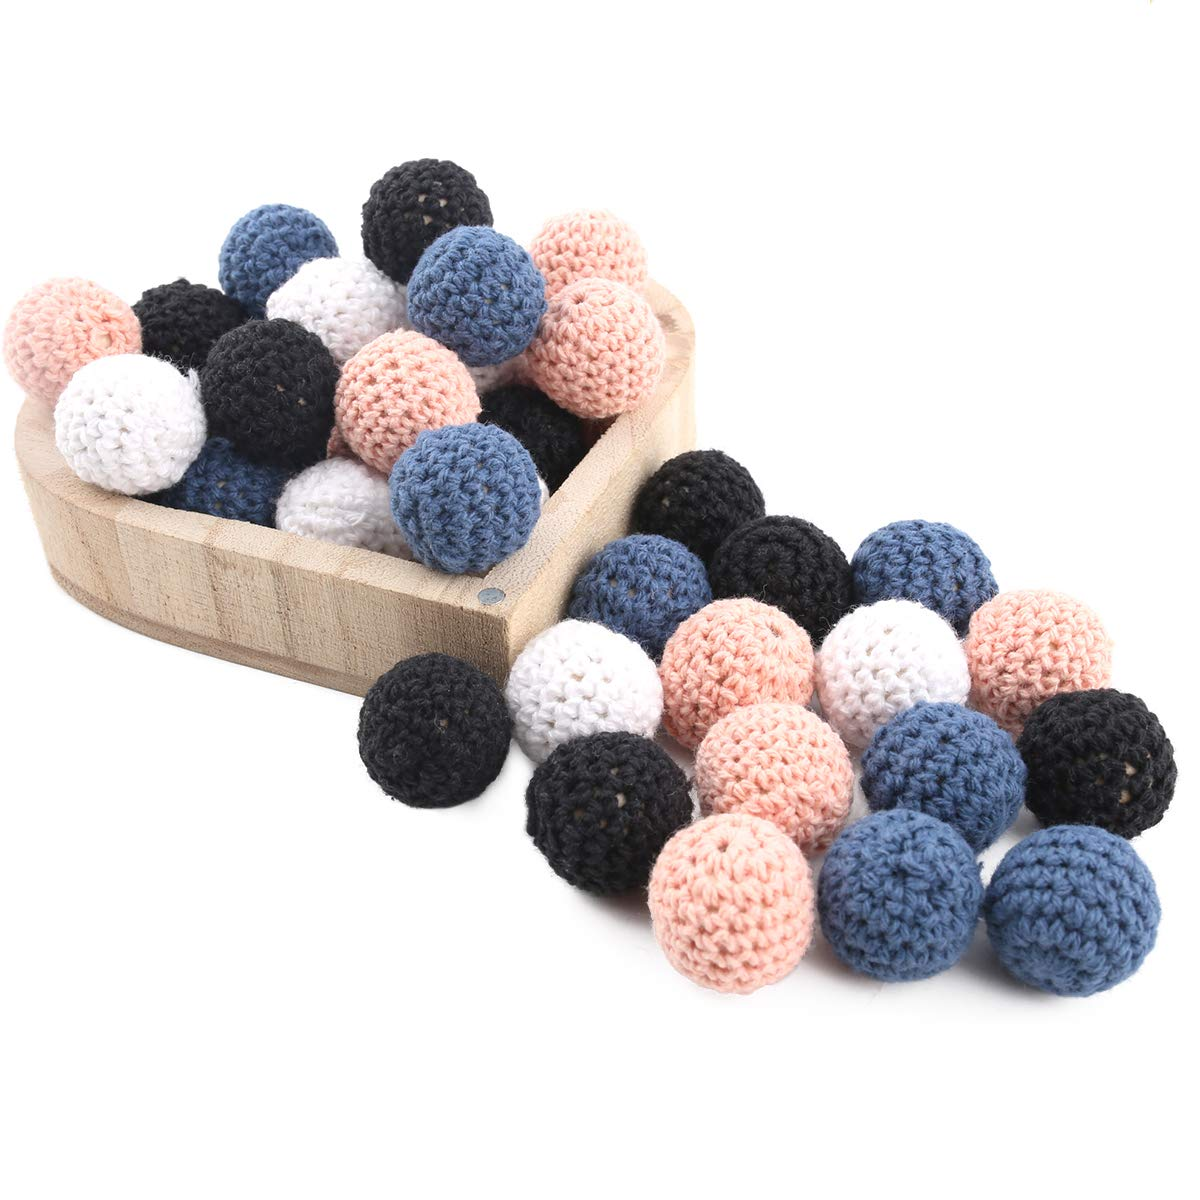 Baby Love Home DIY Teether Toys Wooden Crochet Beads Round Beads 20mm 50pc Nursing Necklace Bracelet Jewelry Accessories Handmade